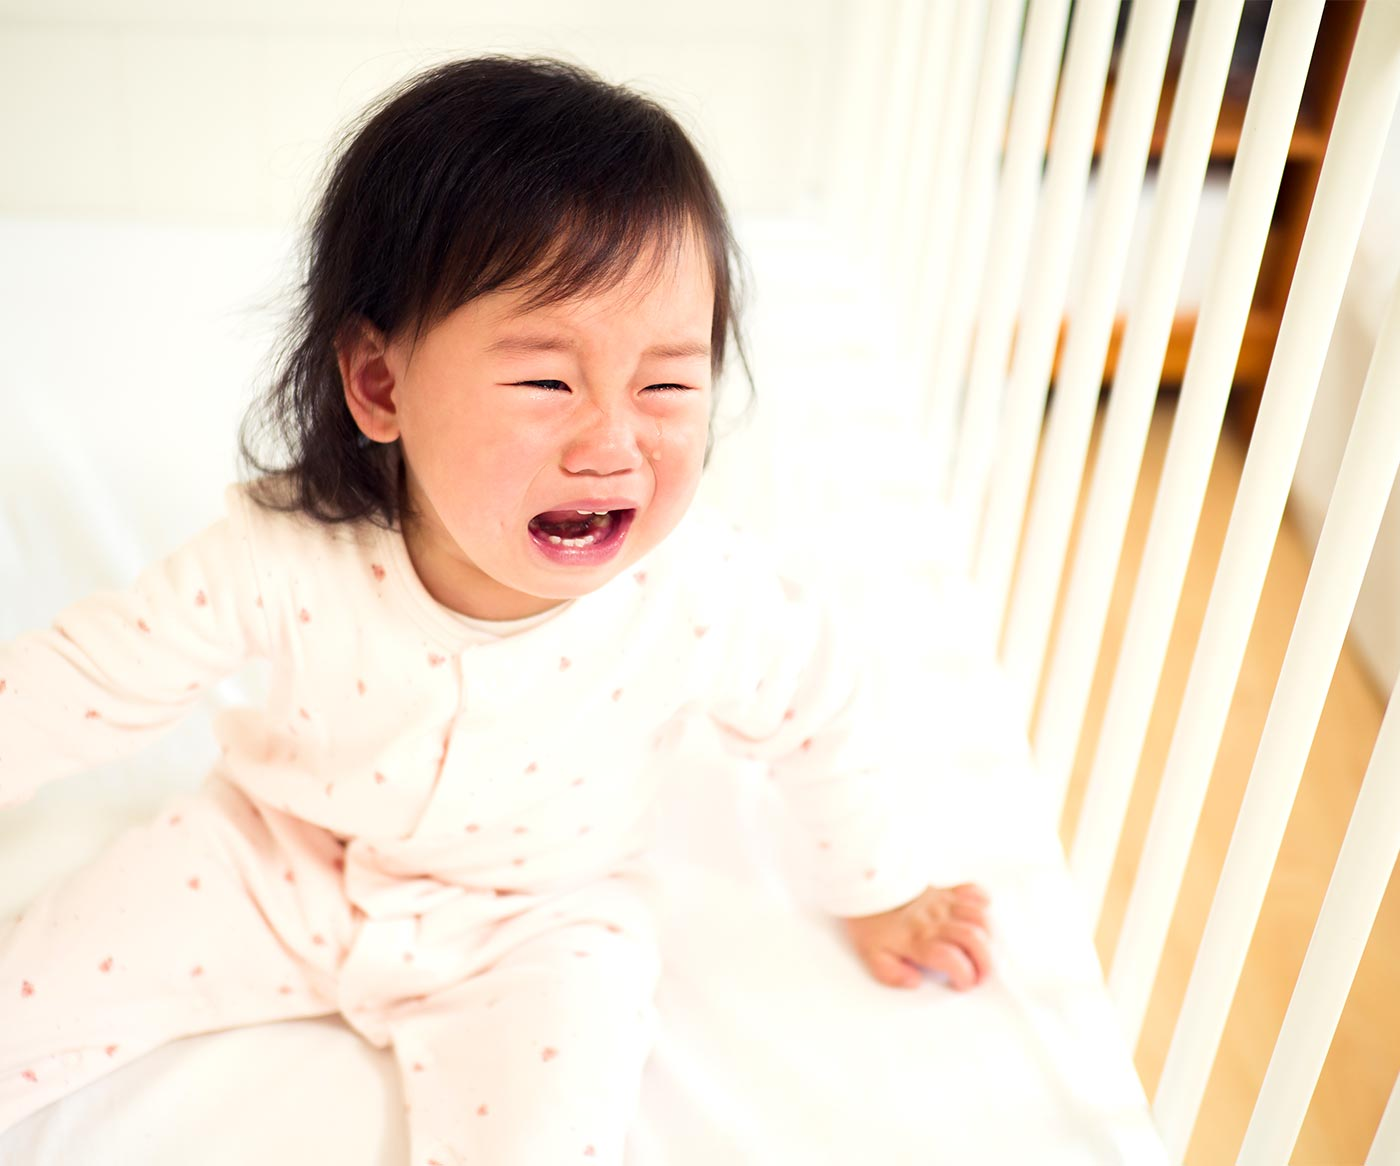 toddler hysterical at bedtime